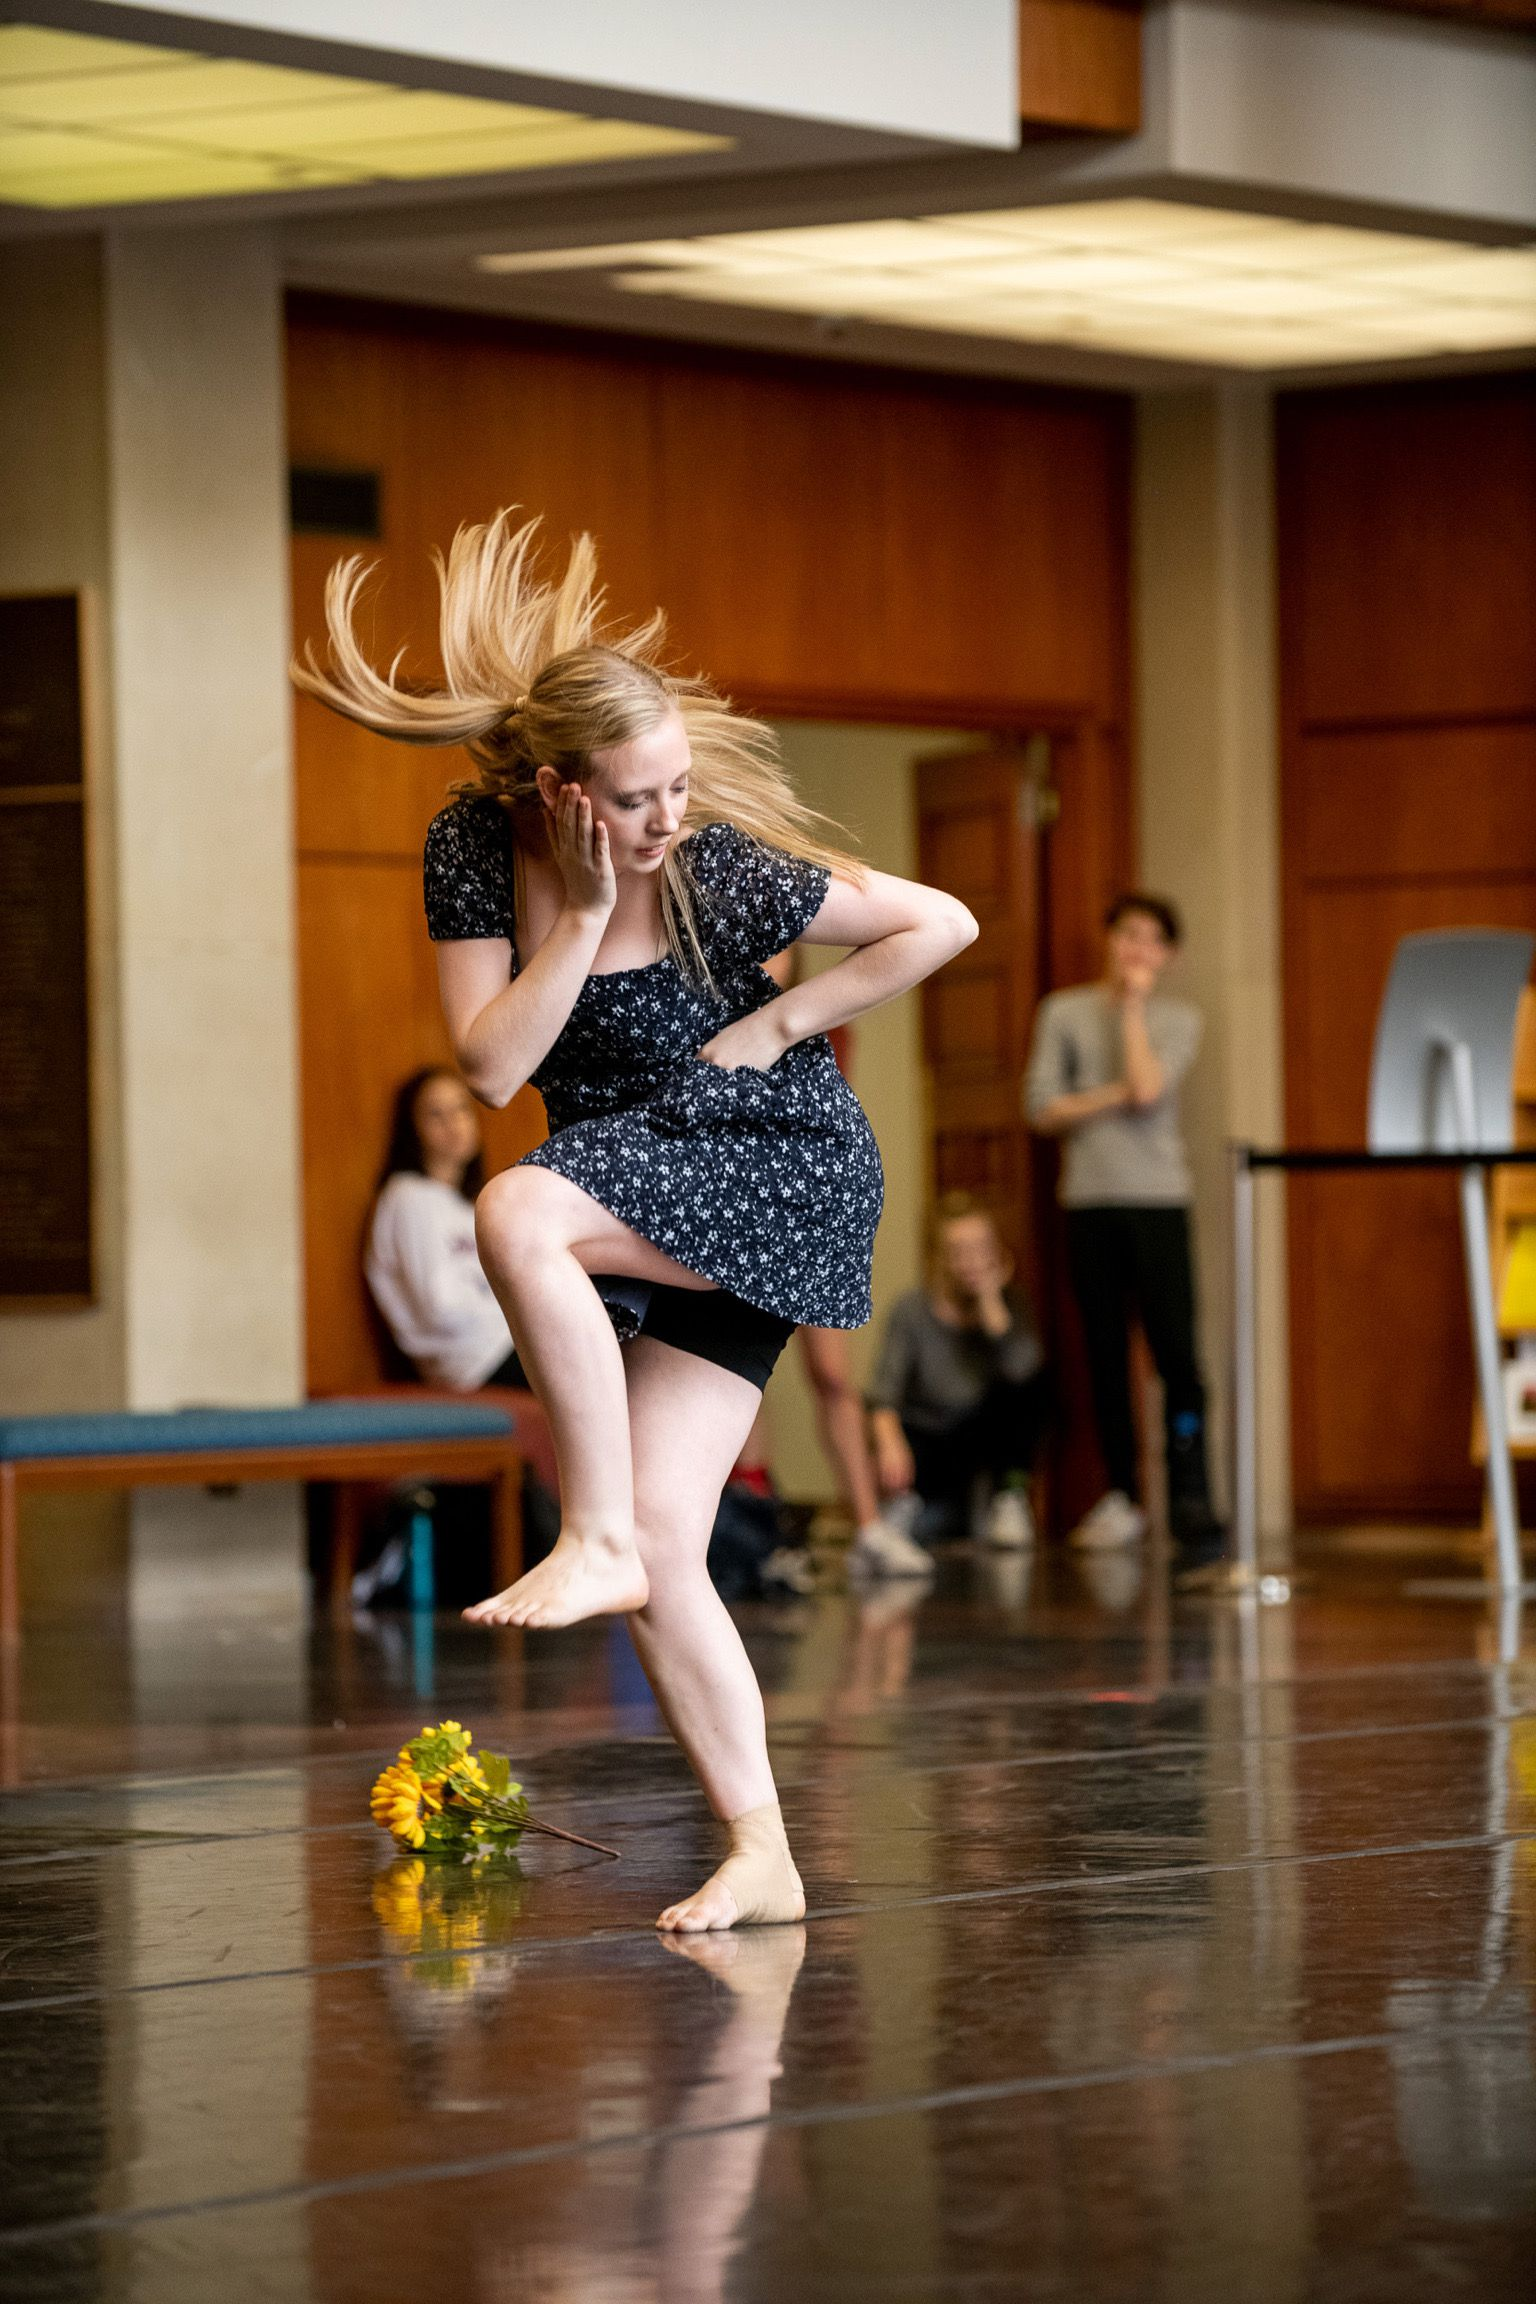 """Khris Beeson performing a self-choreographed solo """"Forget Me Not"""" from the SMU Dance Division's 2018 Fall Brown Bag Series. Beeson's dance background helped her provide clear recommendations for dressing room safety guidelines at the Dallas Theater Center."""